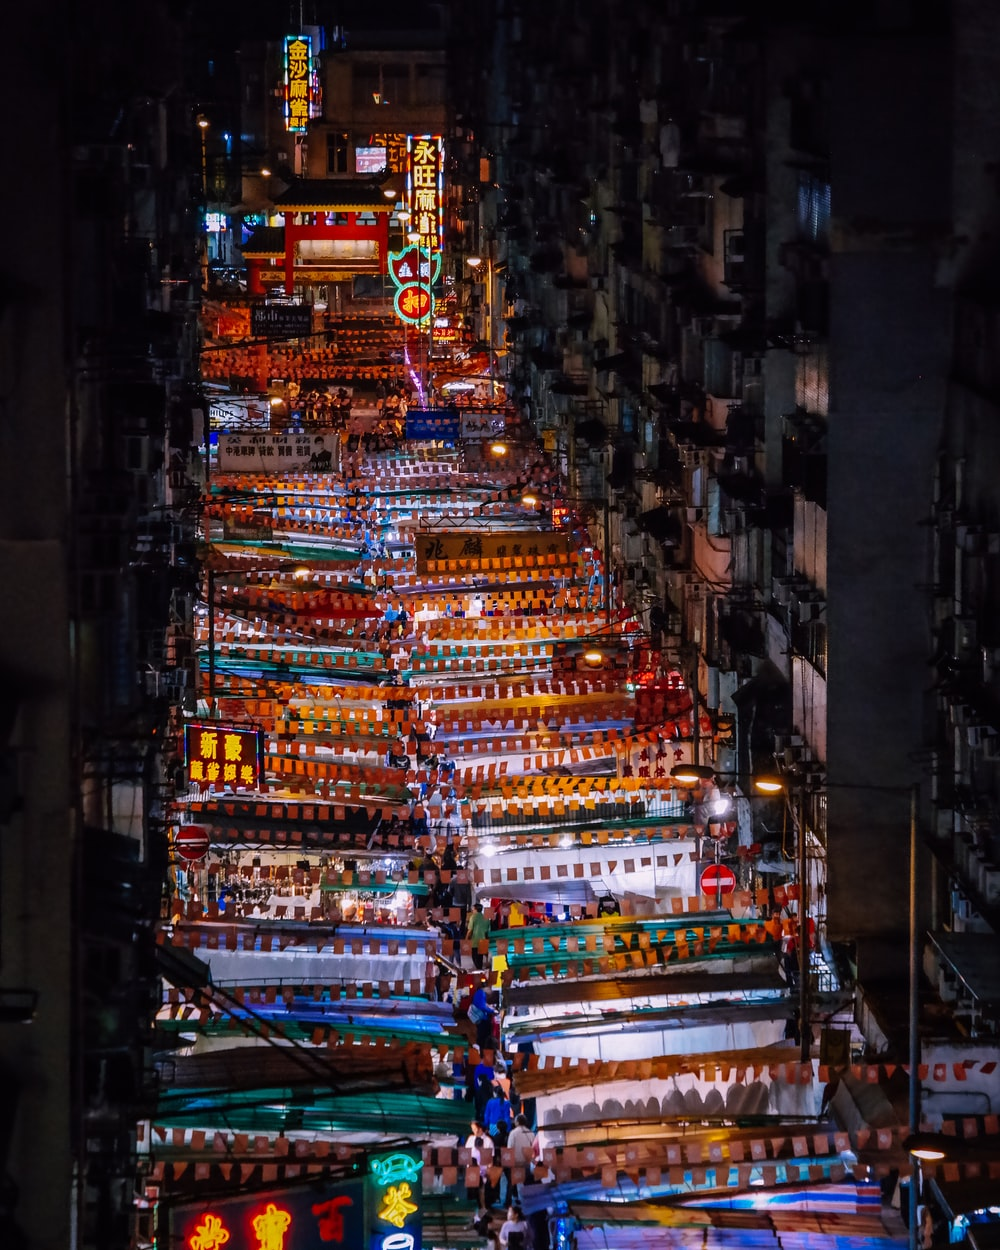 aerial view of market